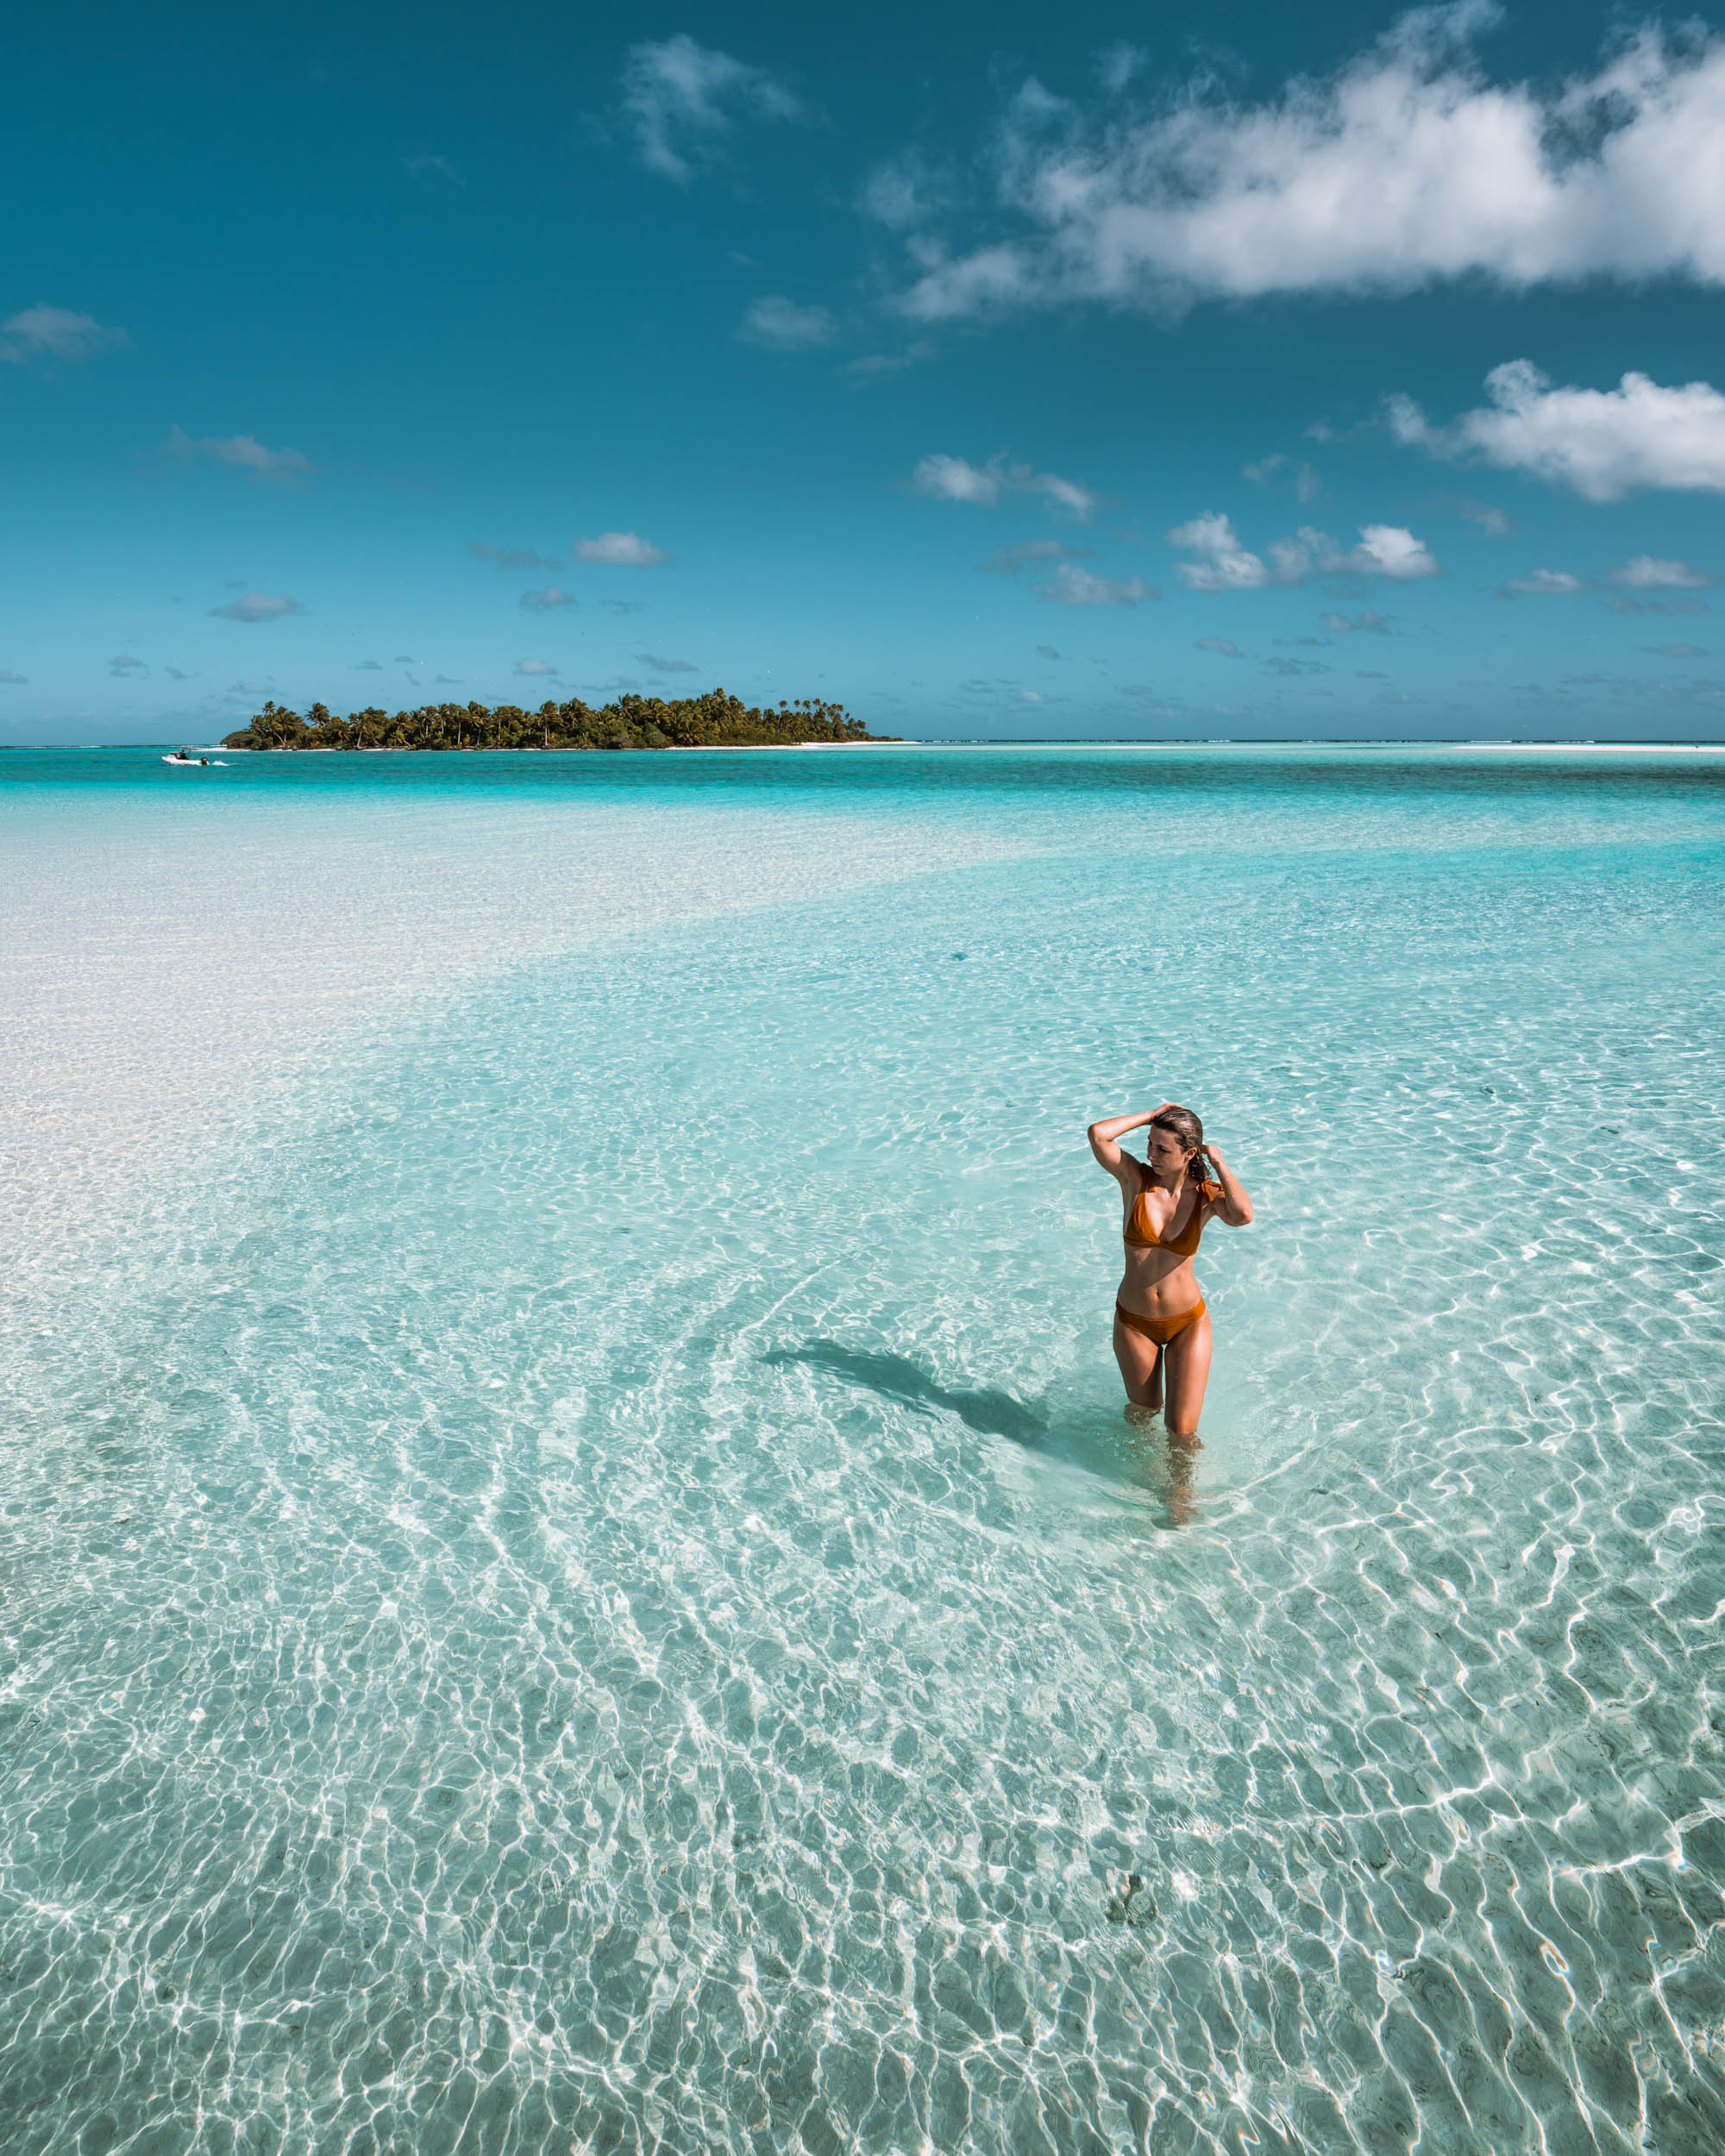 Adobe Lightroom Presets by Find Us Lost | Cook Islands